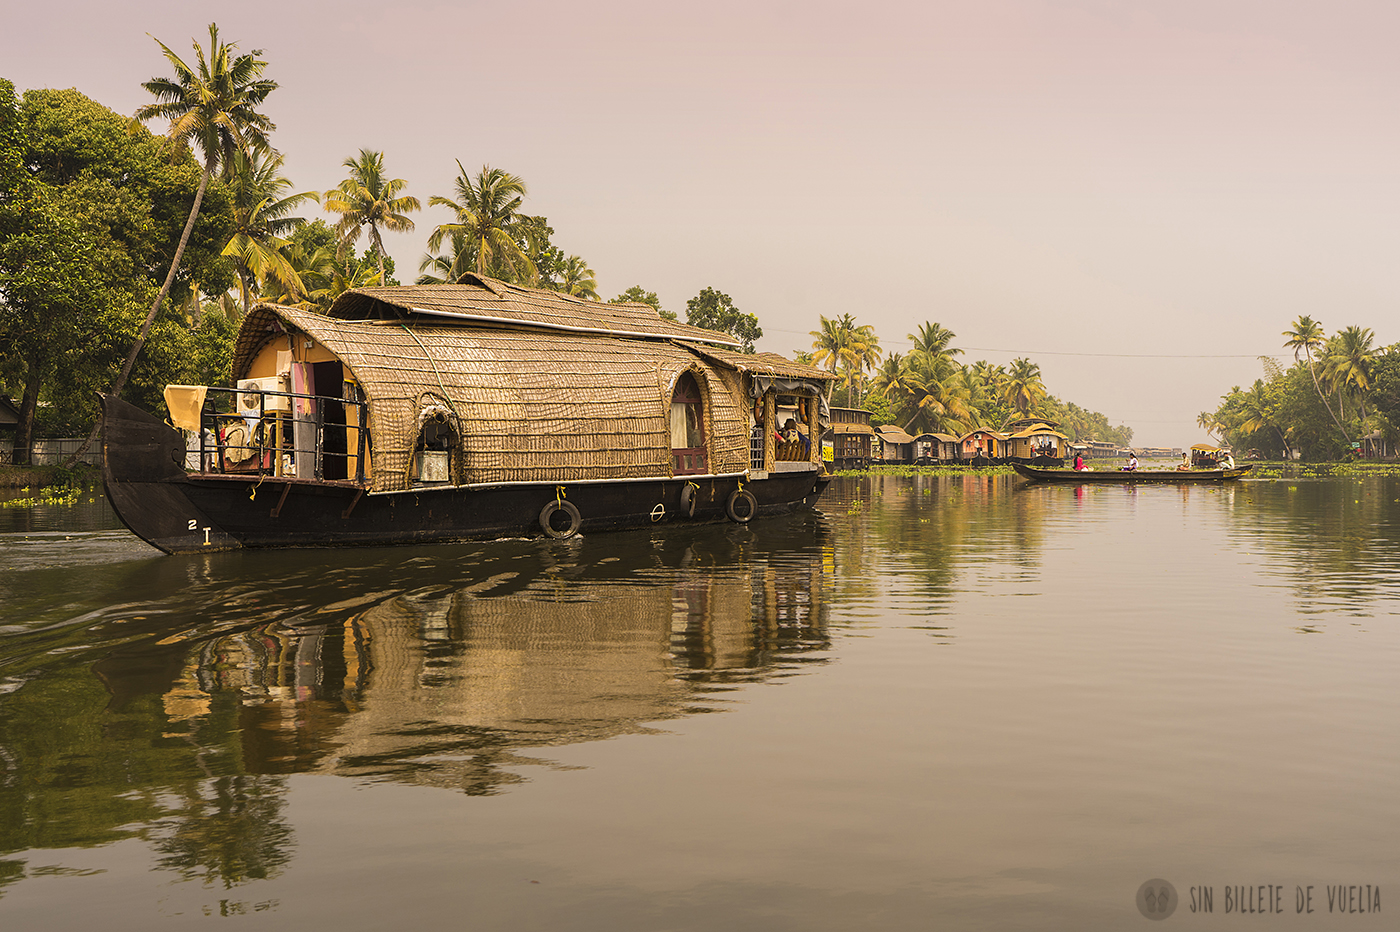 #Día 27 - Backwaters de Kerala